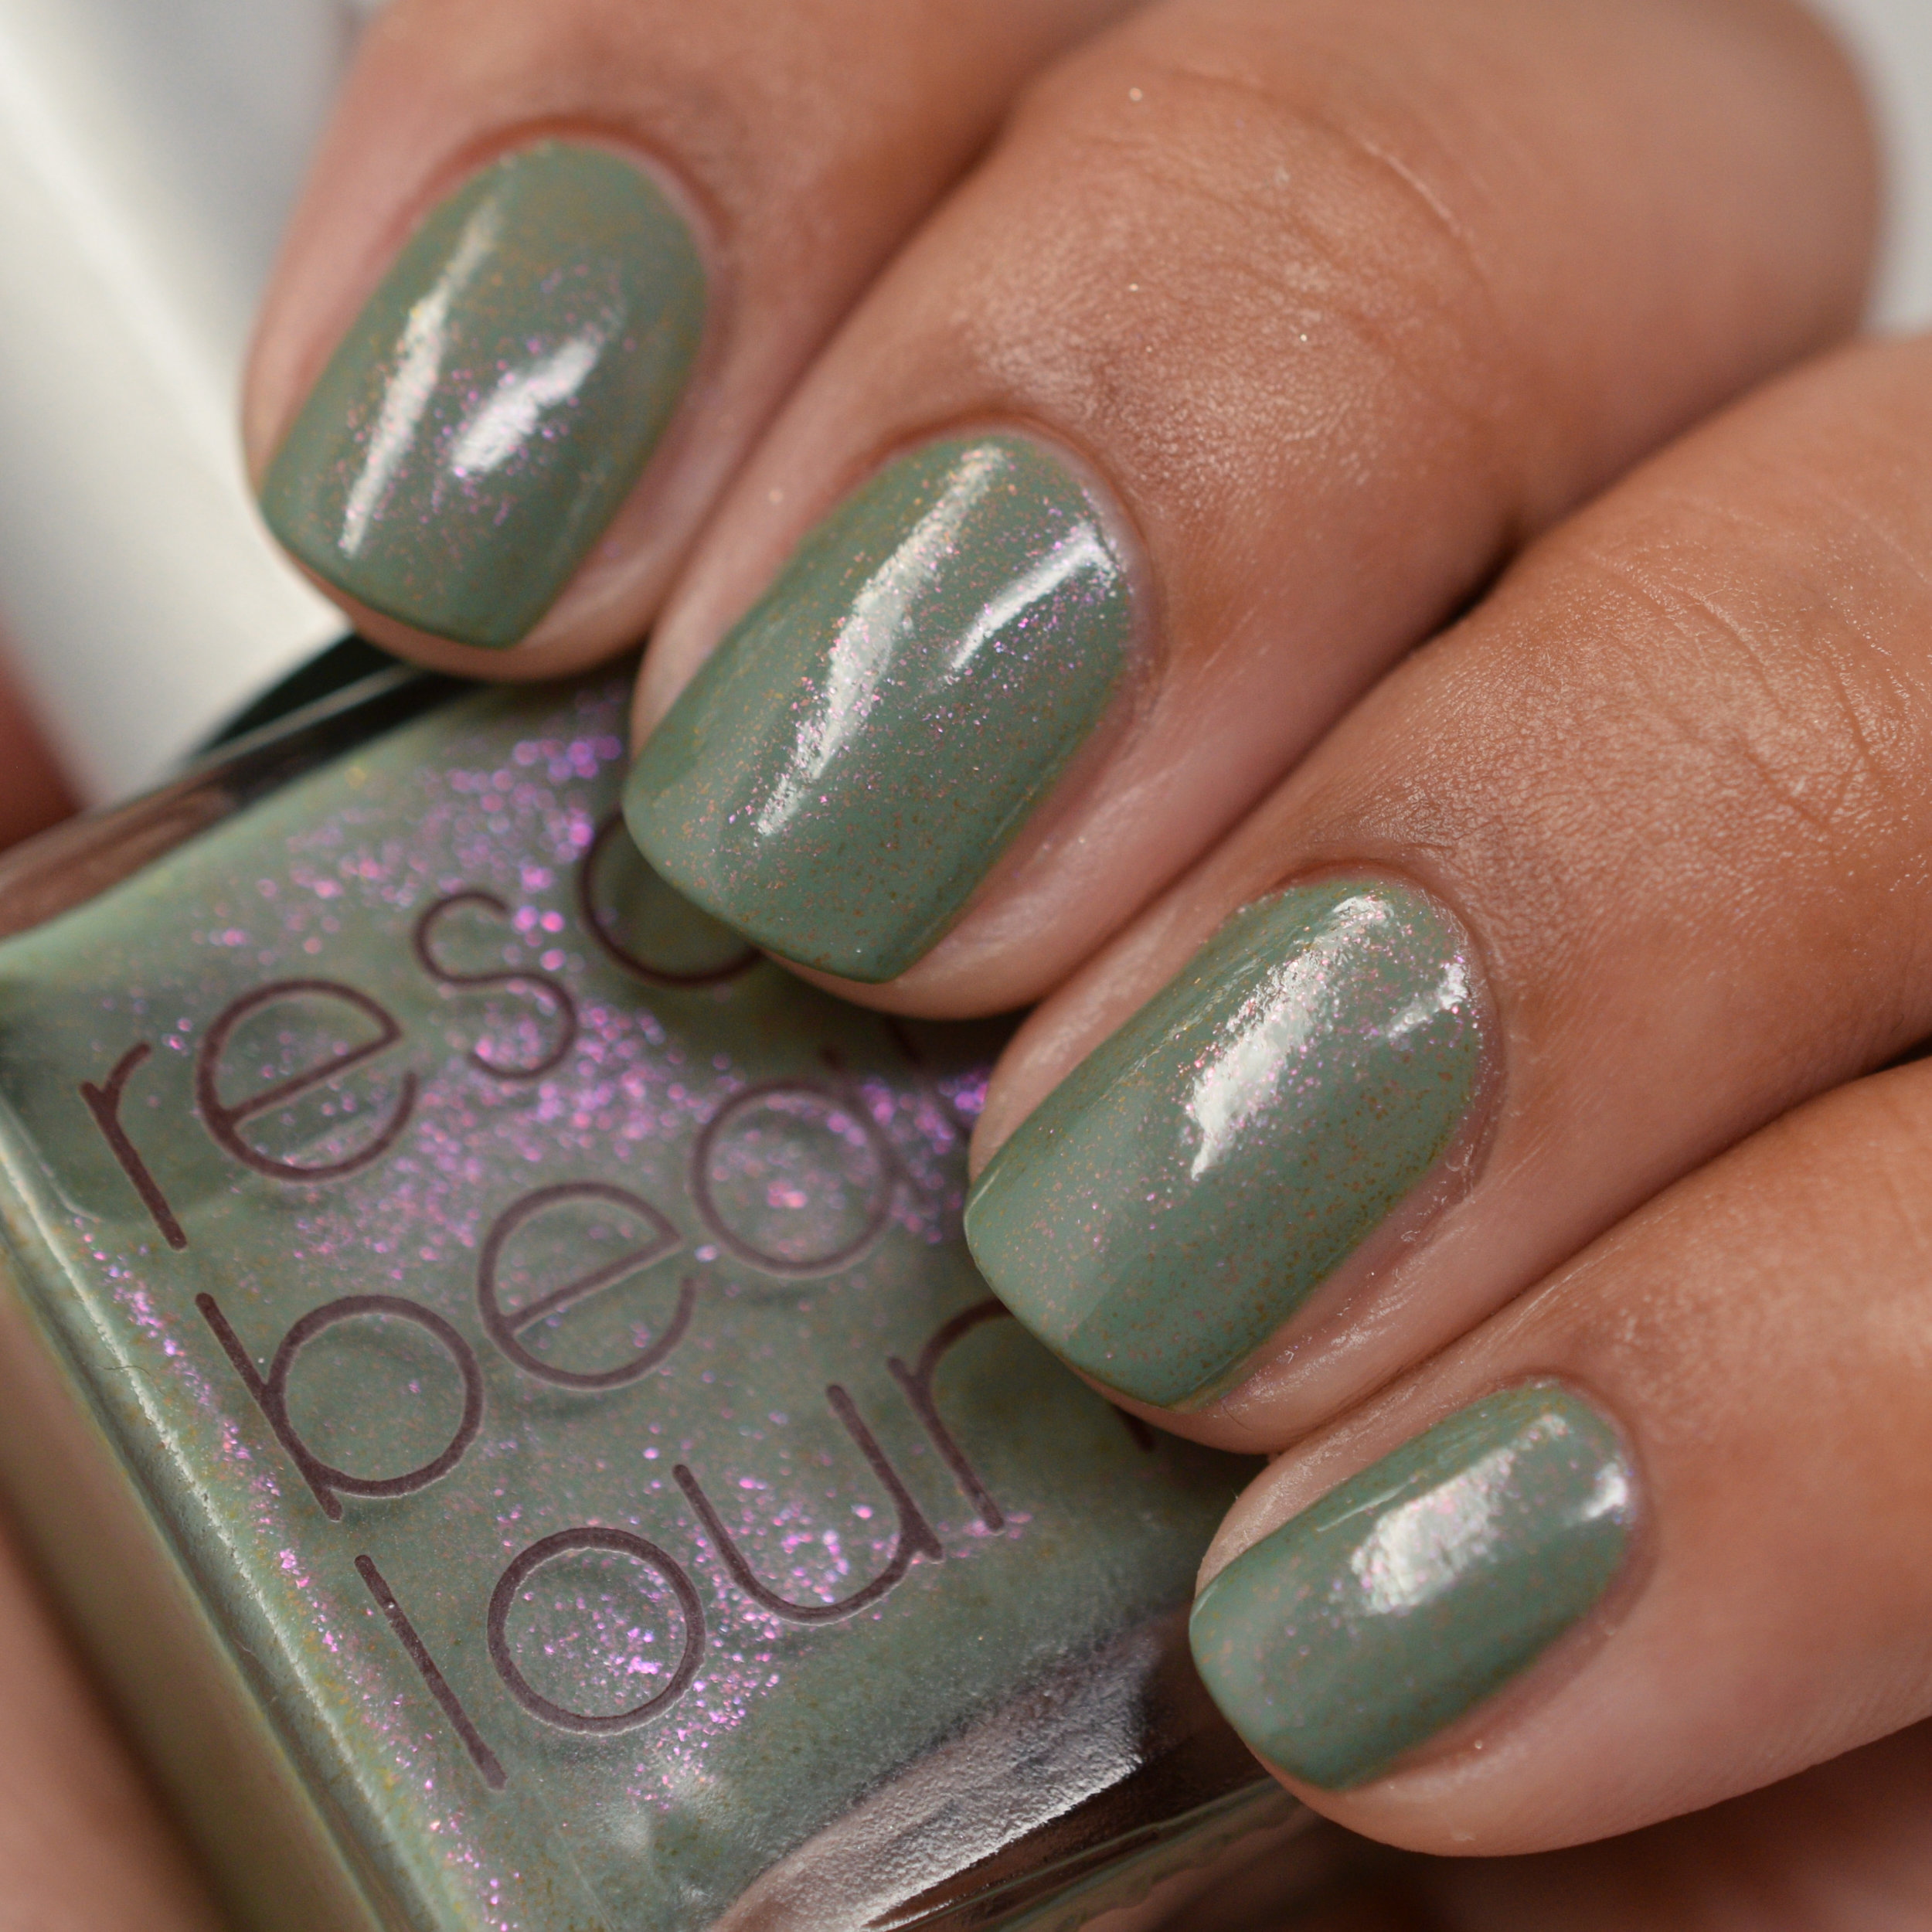 Rescue Beauty Lounge Fan Collection Spring 2012 - Halcyon.jpg